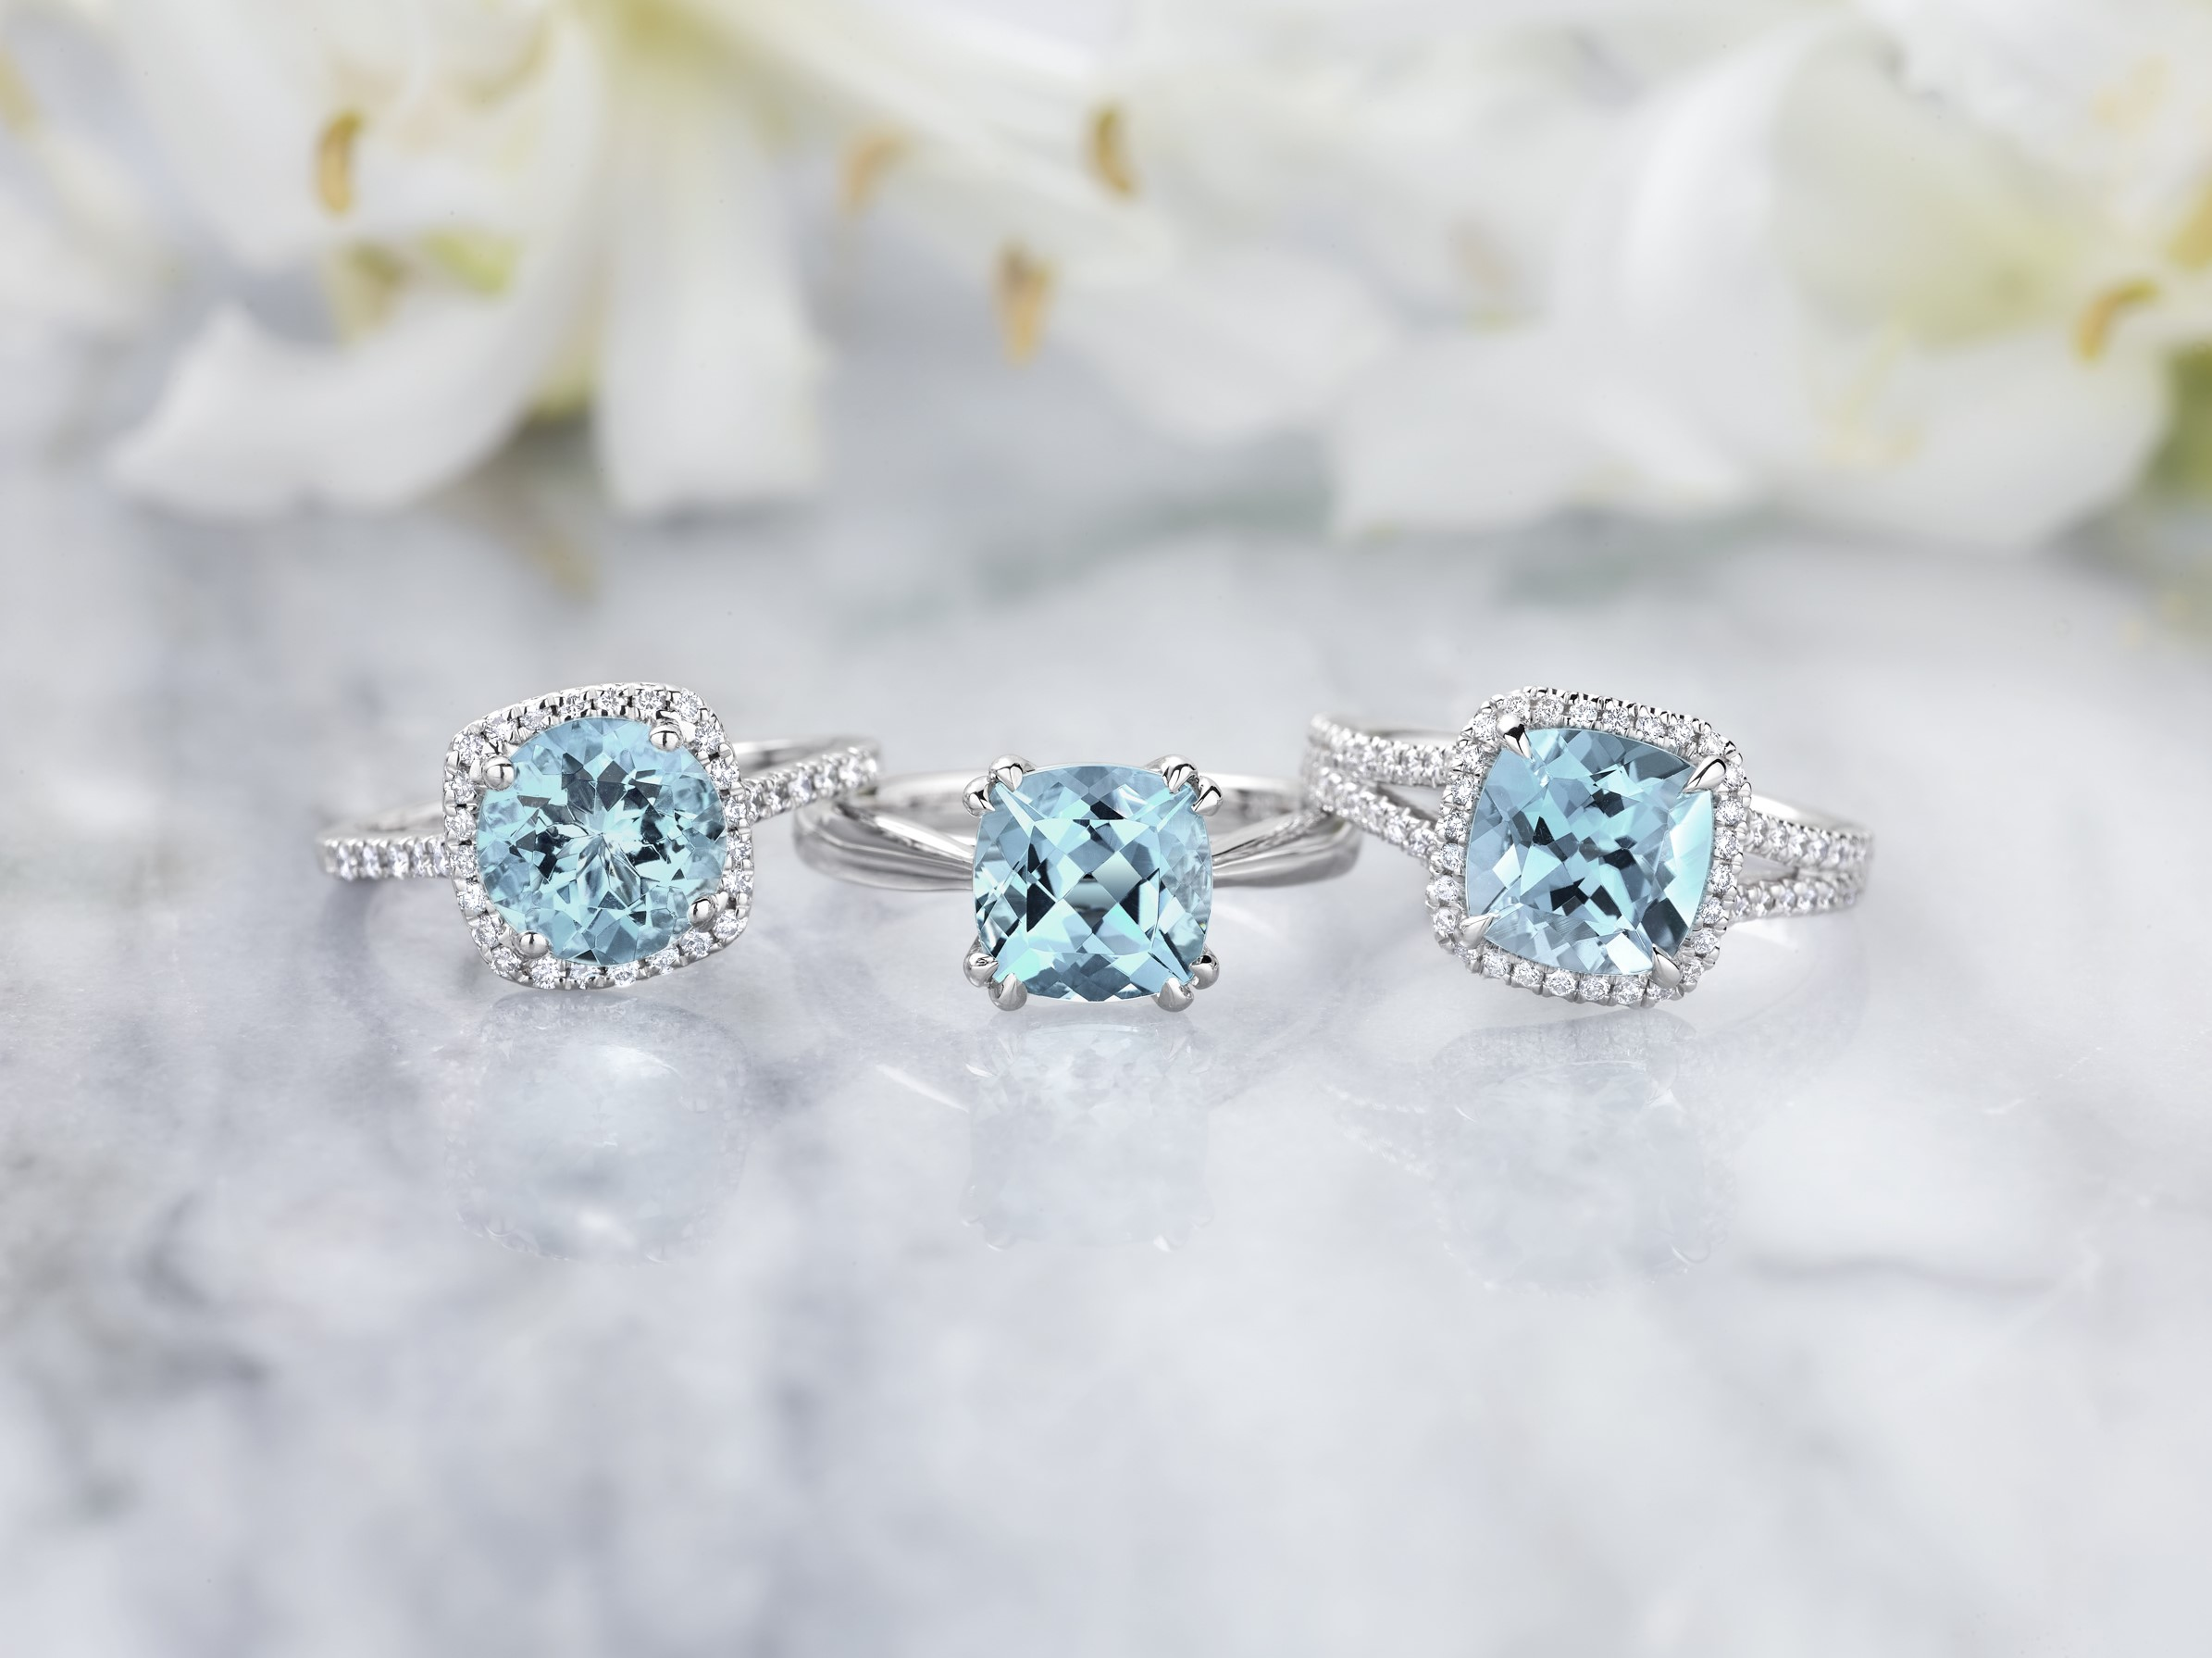 gemstone aquamarine landingpage and diamond co stone rings aqua jewelry glamira engagement uk